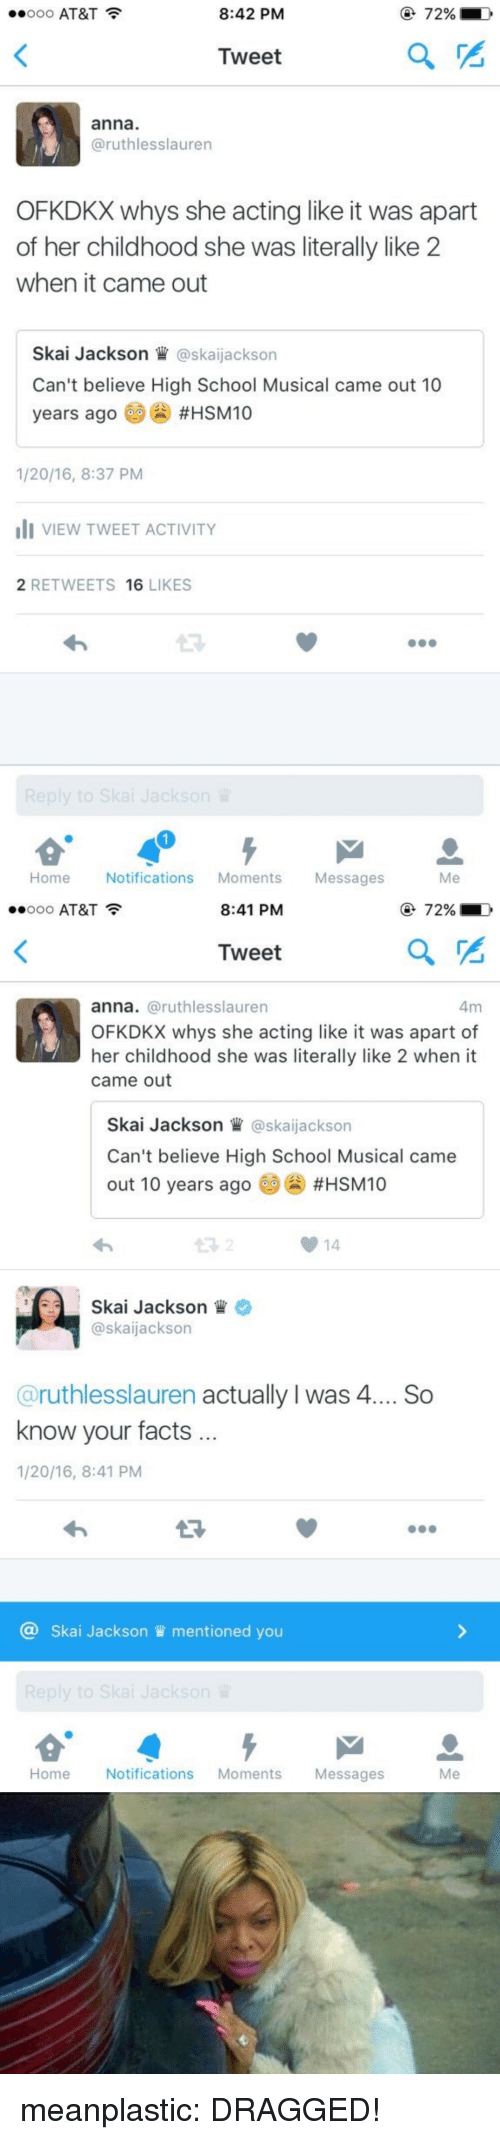 High School Musical: ..ooo AT&T  8:42 PM  72%  Tweet  anna  @ruthlesslauren  OFKDKX whys she acting like it was apart  of her childhood she was literally like 2  when it came out  Skai Jackson W@skaijackson  Can't believe High School Musical came out 10  years ago #HSM10  1/20/16, 8:37 PM  VIEW TWEET ACTIVITY  2 RETWEETS 16 LIKES  13  Home Notifications Moments Messages  Me   ..ooo AT&T  8:41 PM  72%  Tweet  anna. @ruthlesslauren  OFKDKX whys she acting like it was apart of  her childhood she was literally like 2 when it  came out  Skai Jackson @skaijackson  Can't believe High School Musical came  out 10 years ago 60() #HSM10  14  Skai Jackson  @skaijackson  @ruthlesslauren actually I was 4... So  know your facts  1/20/16, 8:41 PM  13  @ Skai Jackson mentioned you  Home Notifications Moments Messages  Me meanplastic:  DRAGGED!